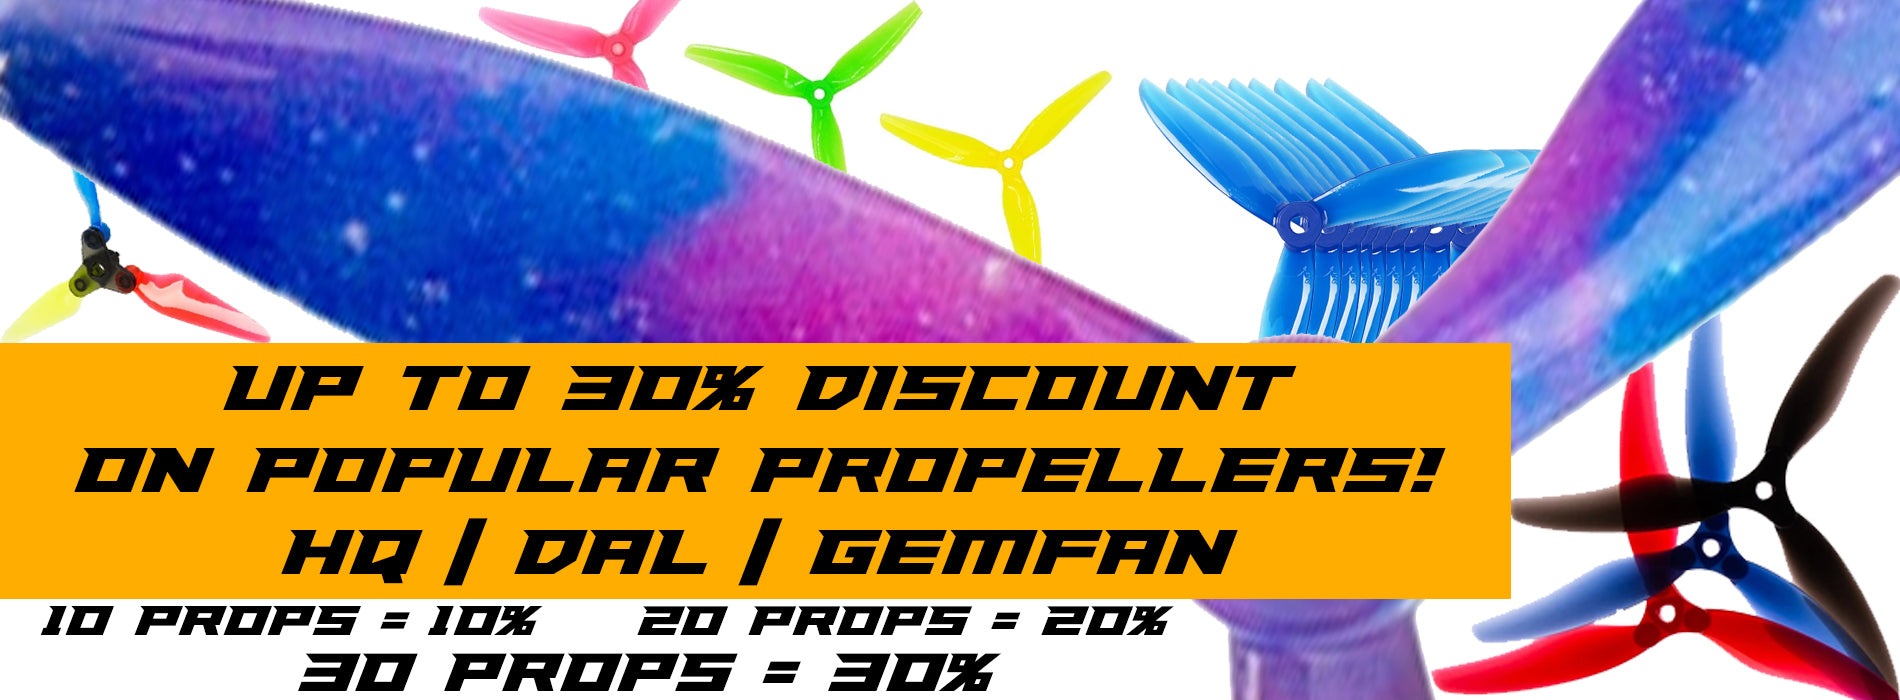 30 Percent Off Bulk Propeller PyroDrone Discount for FPV Drone Racing and Freestyle